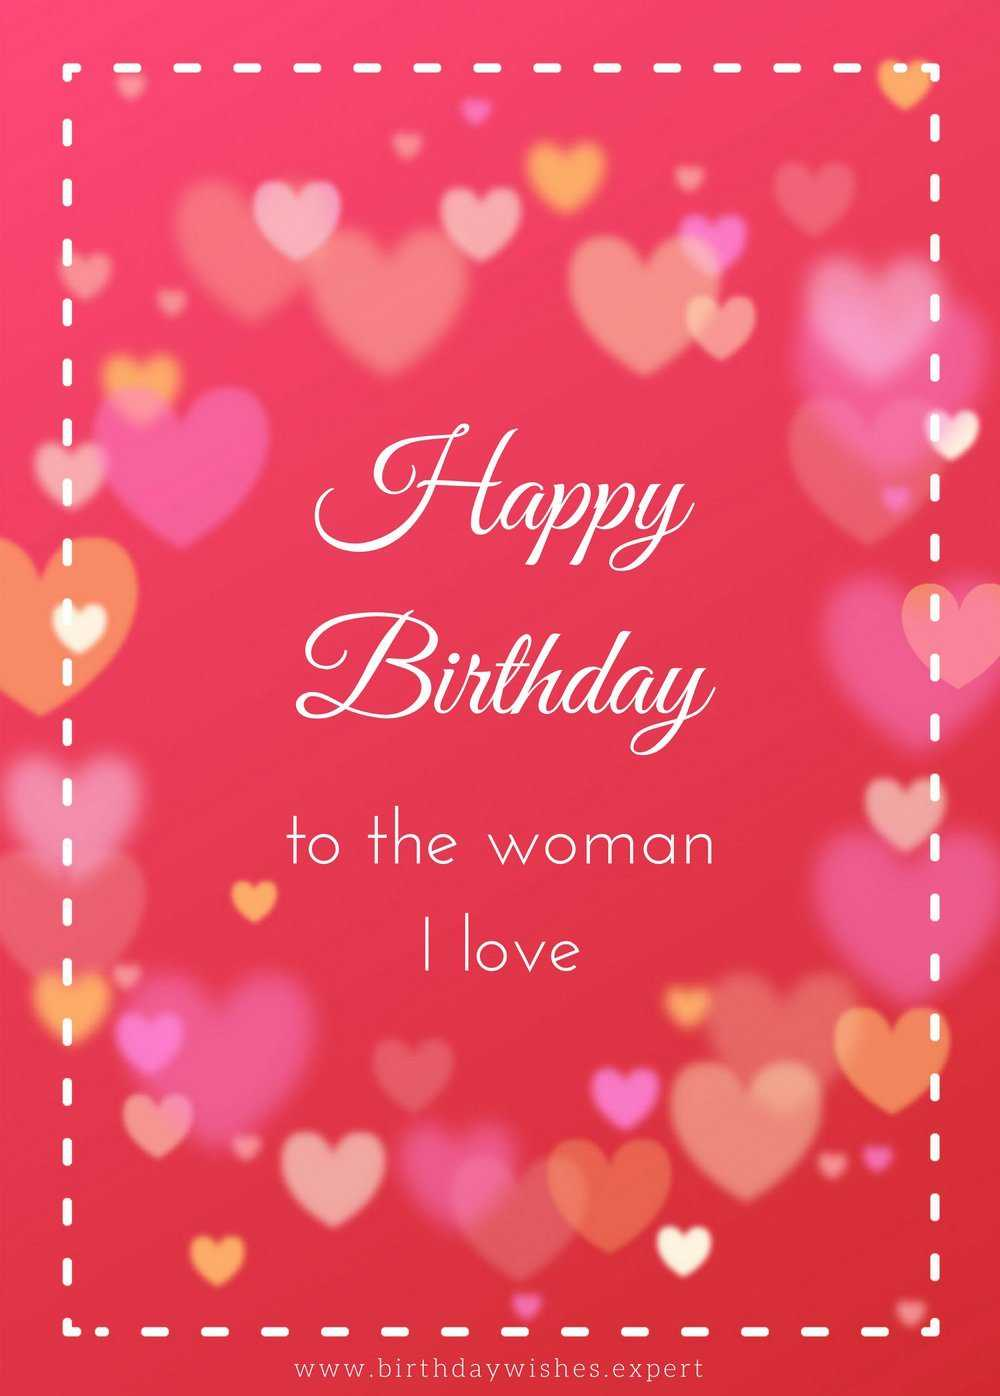 wife birthday greeting card message ; top-birthday-wishes-for-your-wife-happy-birthday-to-the-woman-i-love